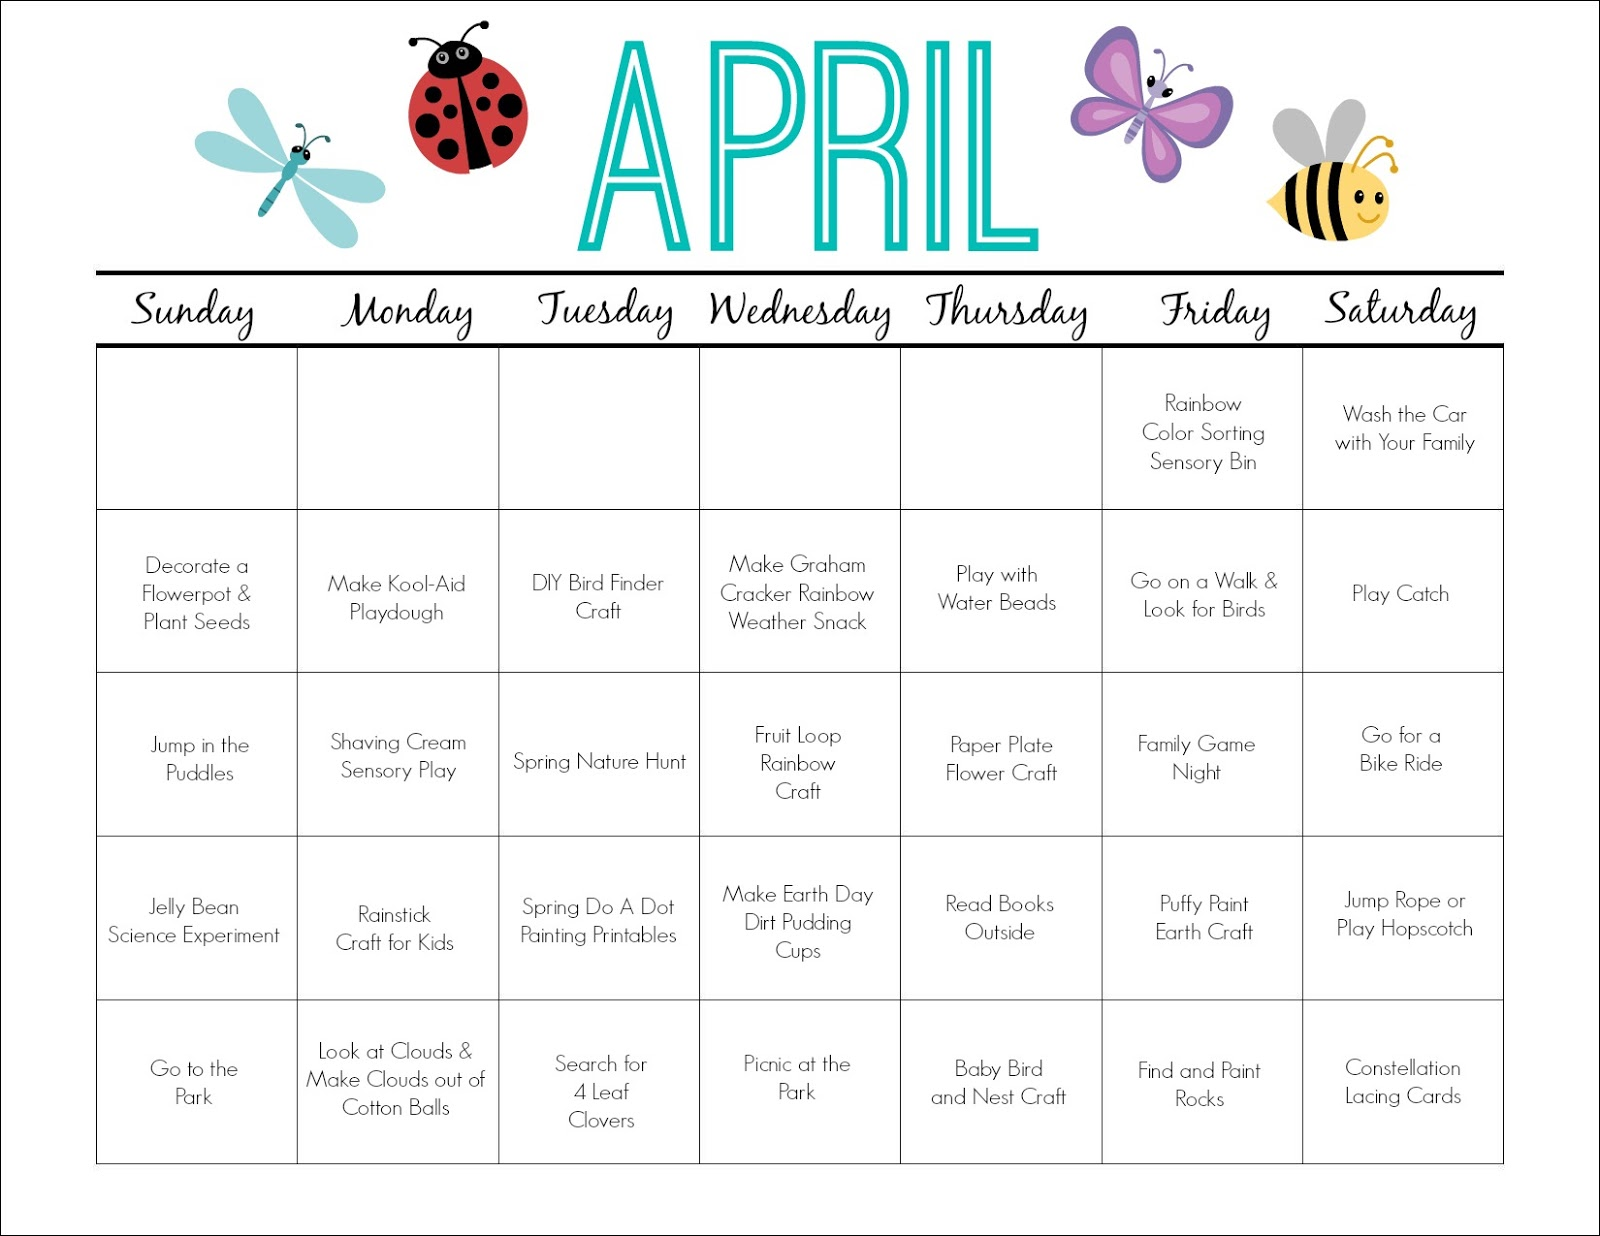 Printable Activity Calendar for Kids: Free Printable from The ...